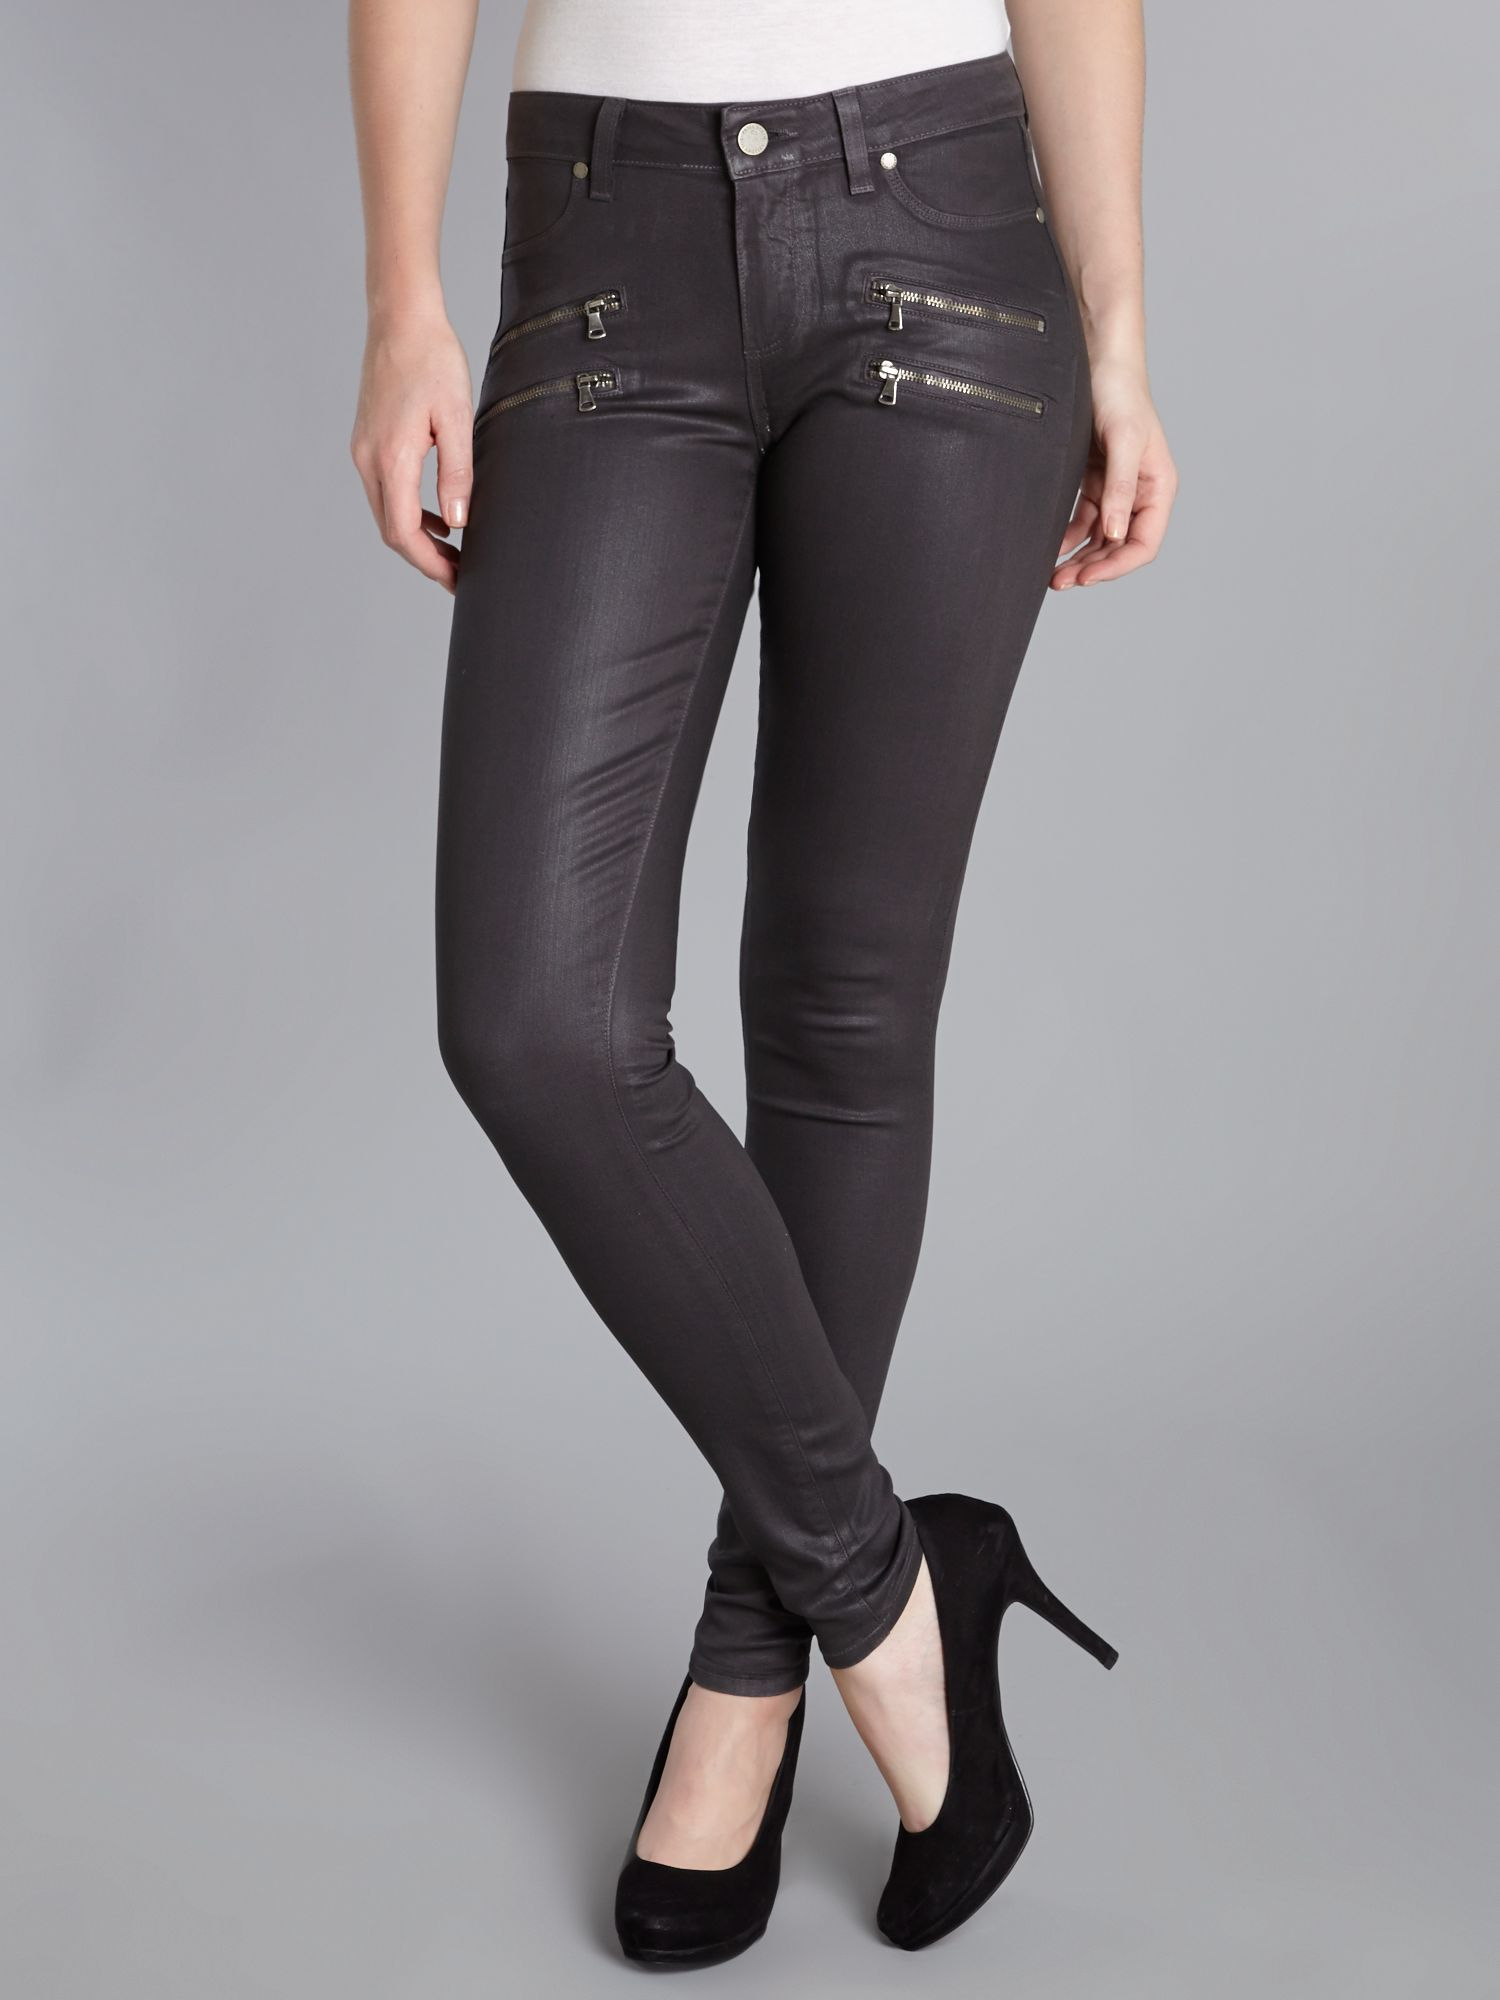 Edgemont skinny coated jeans in City Fog